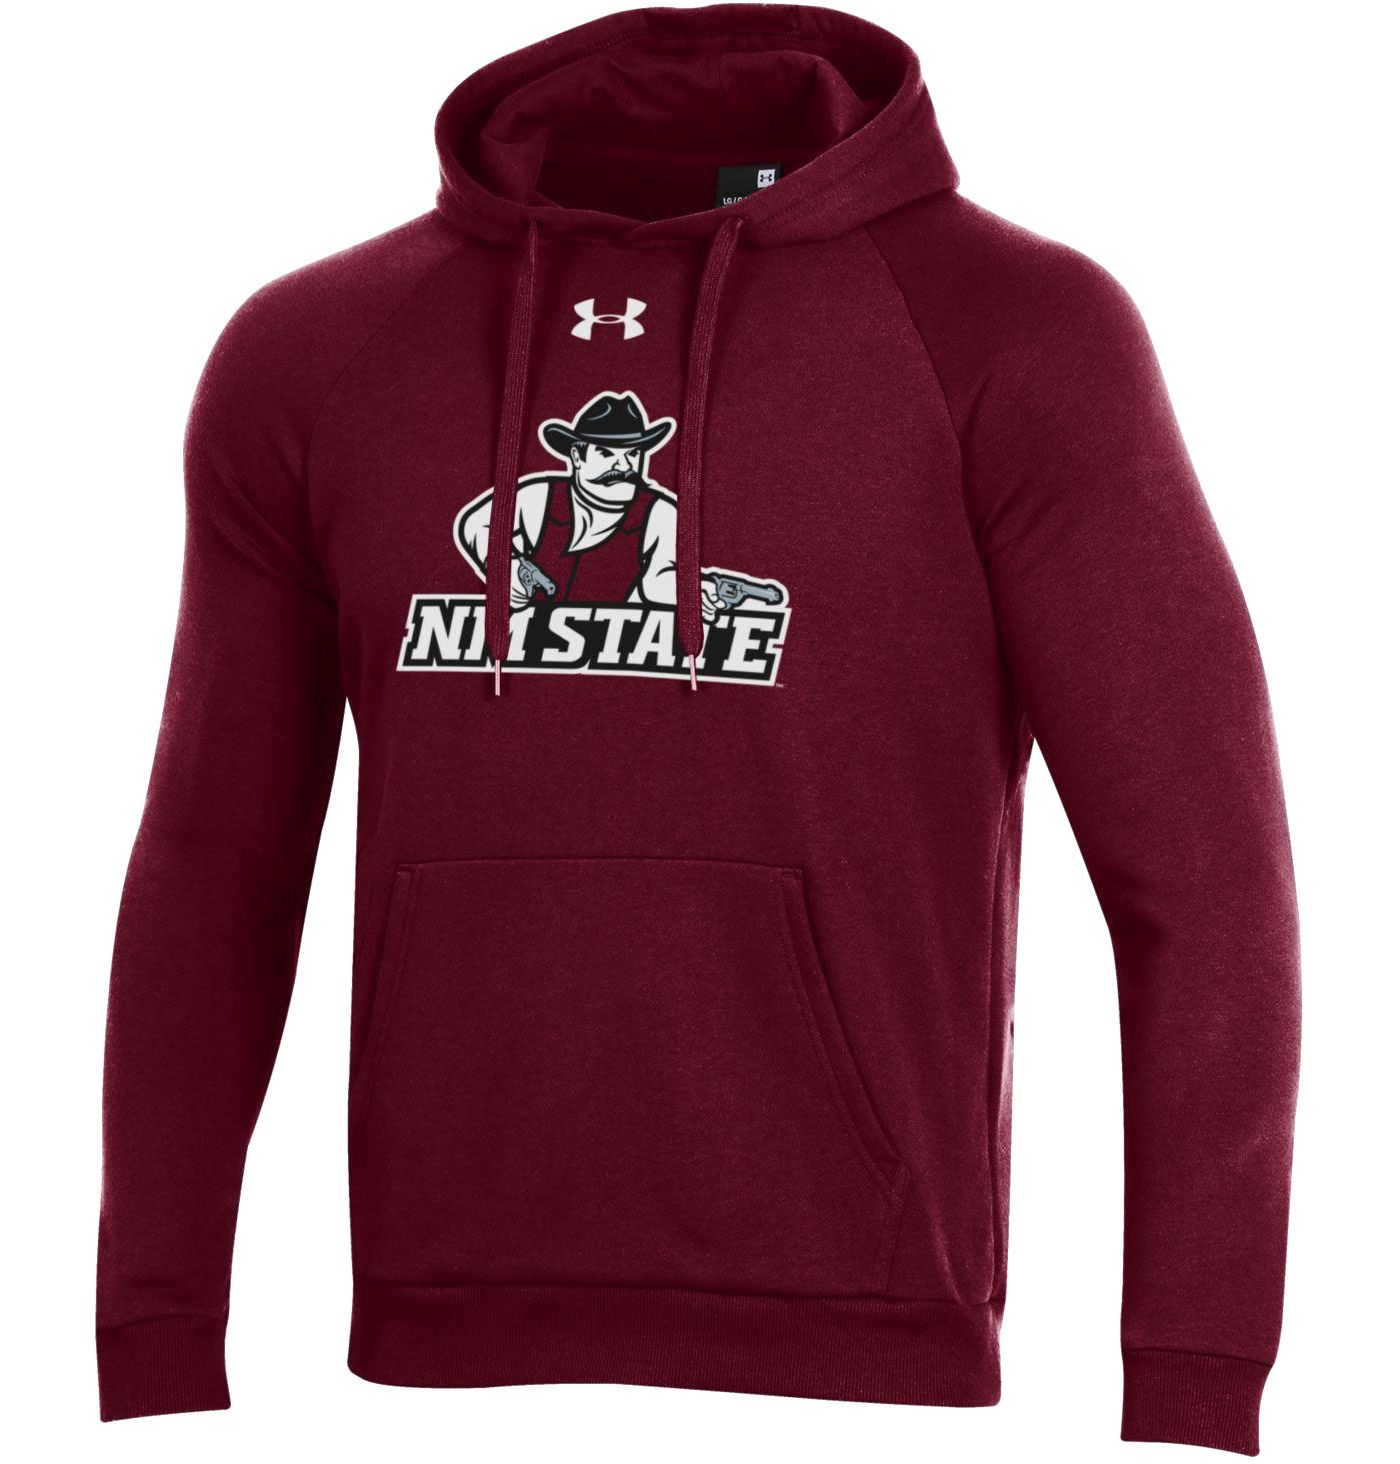 Under Armour Men's New Mexico State Aggies Crimson All Day Hoodie